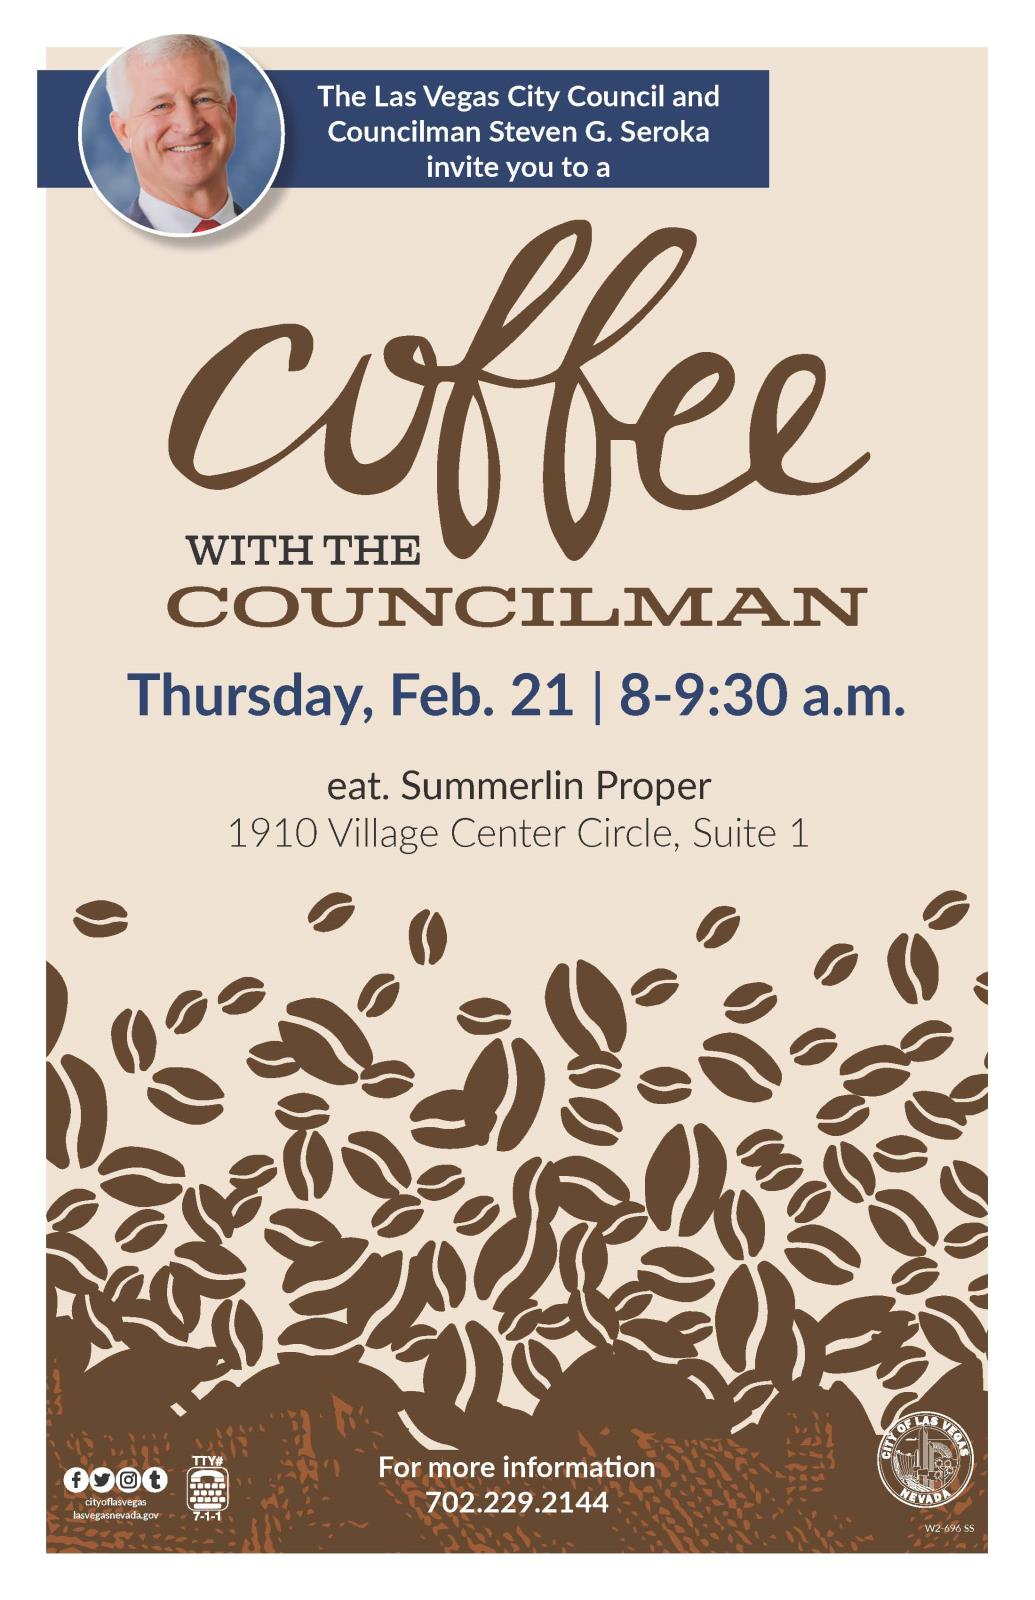 W2CoffeewCouncilmanFeb-21-2019 flier.jpg